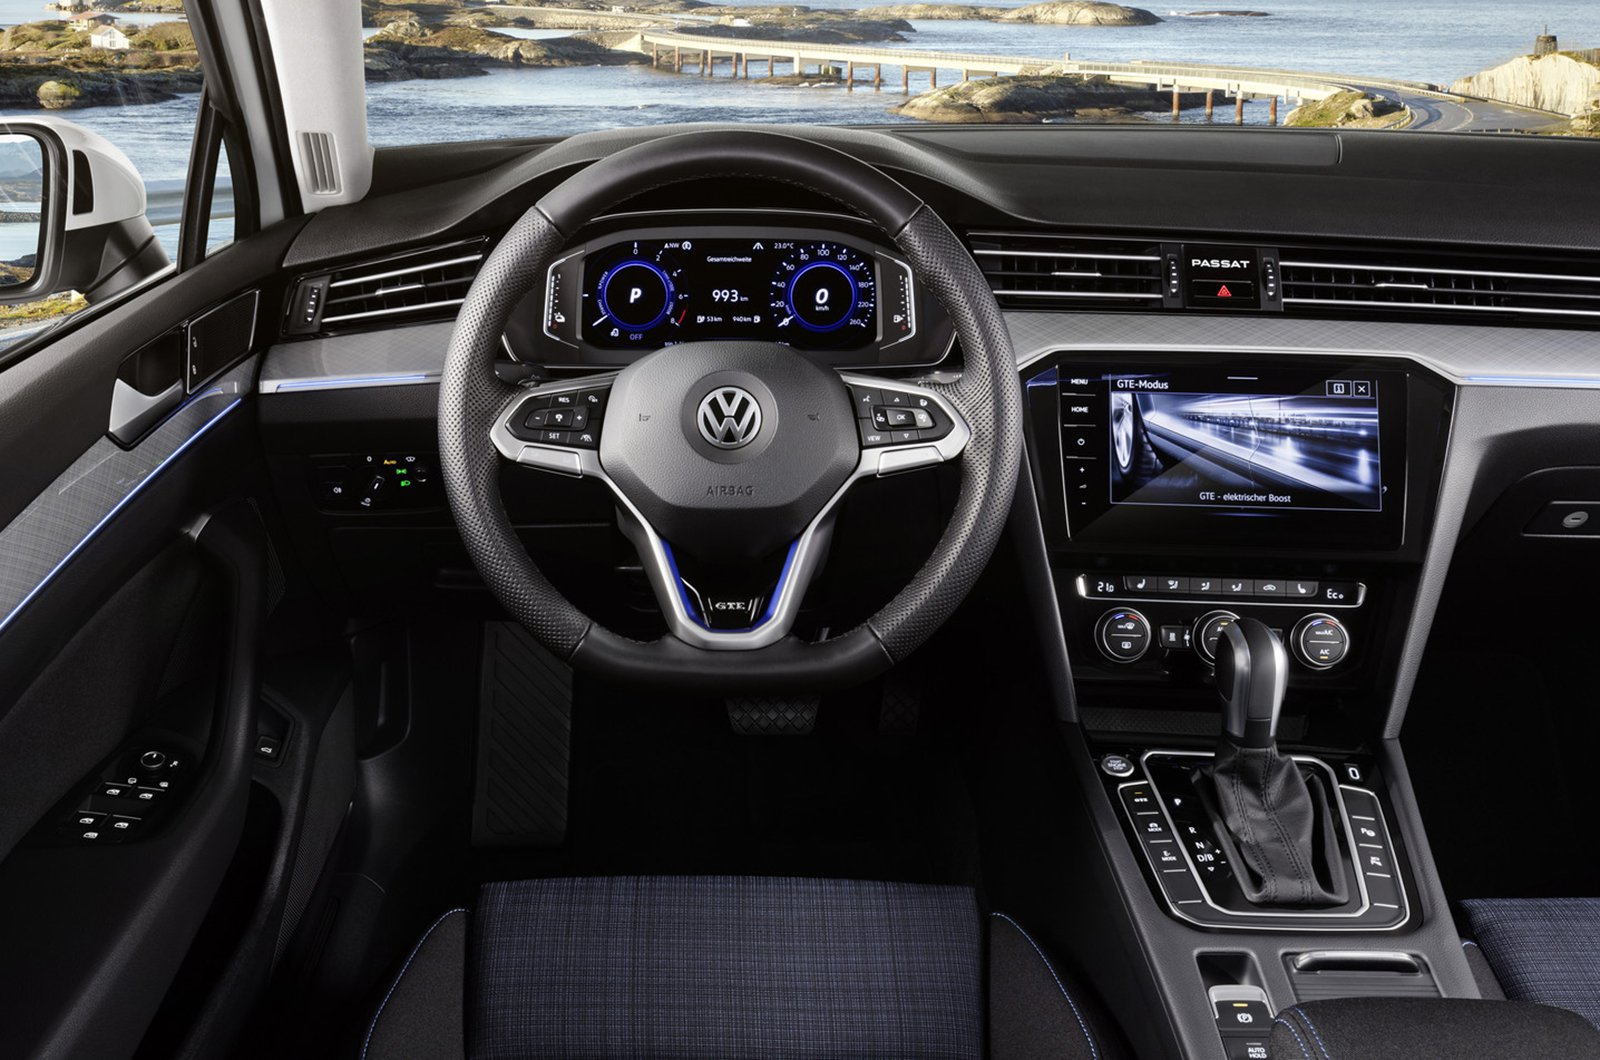 Volkswagen Passat Estate GTE interior